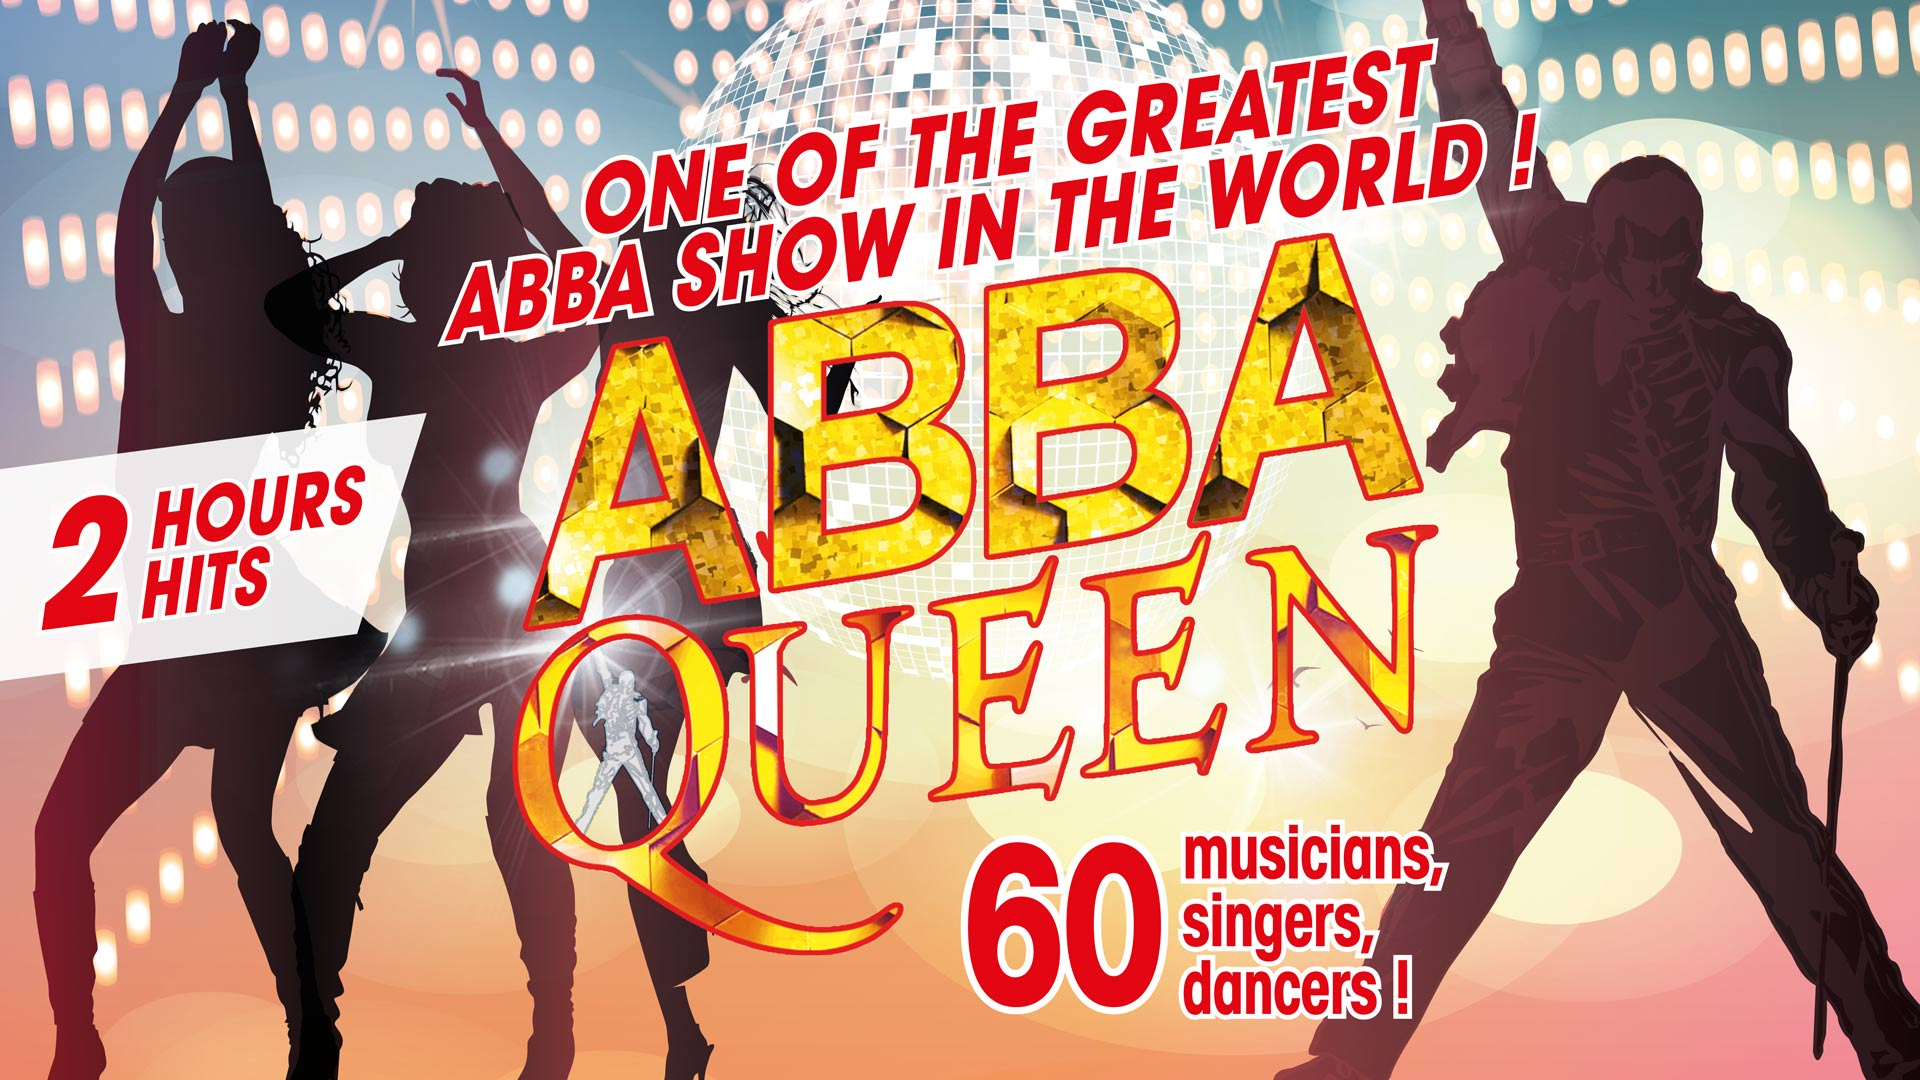 ABBA QUEEN, One of the greatest abba show in the world! 60 musicians, singers and dancers! 2 hours hits!